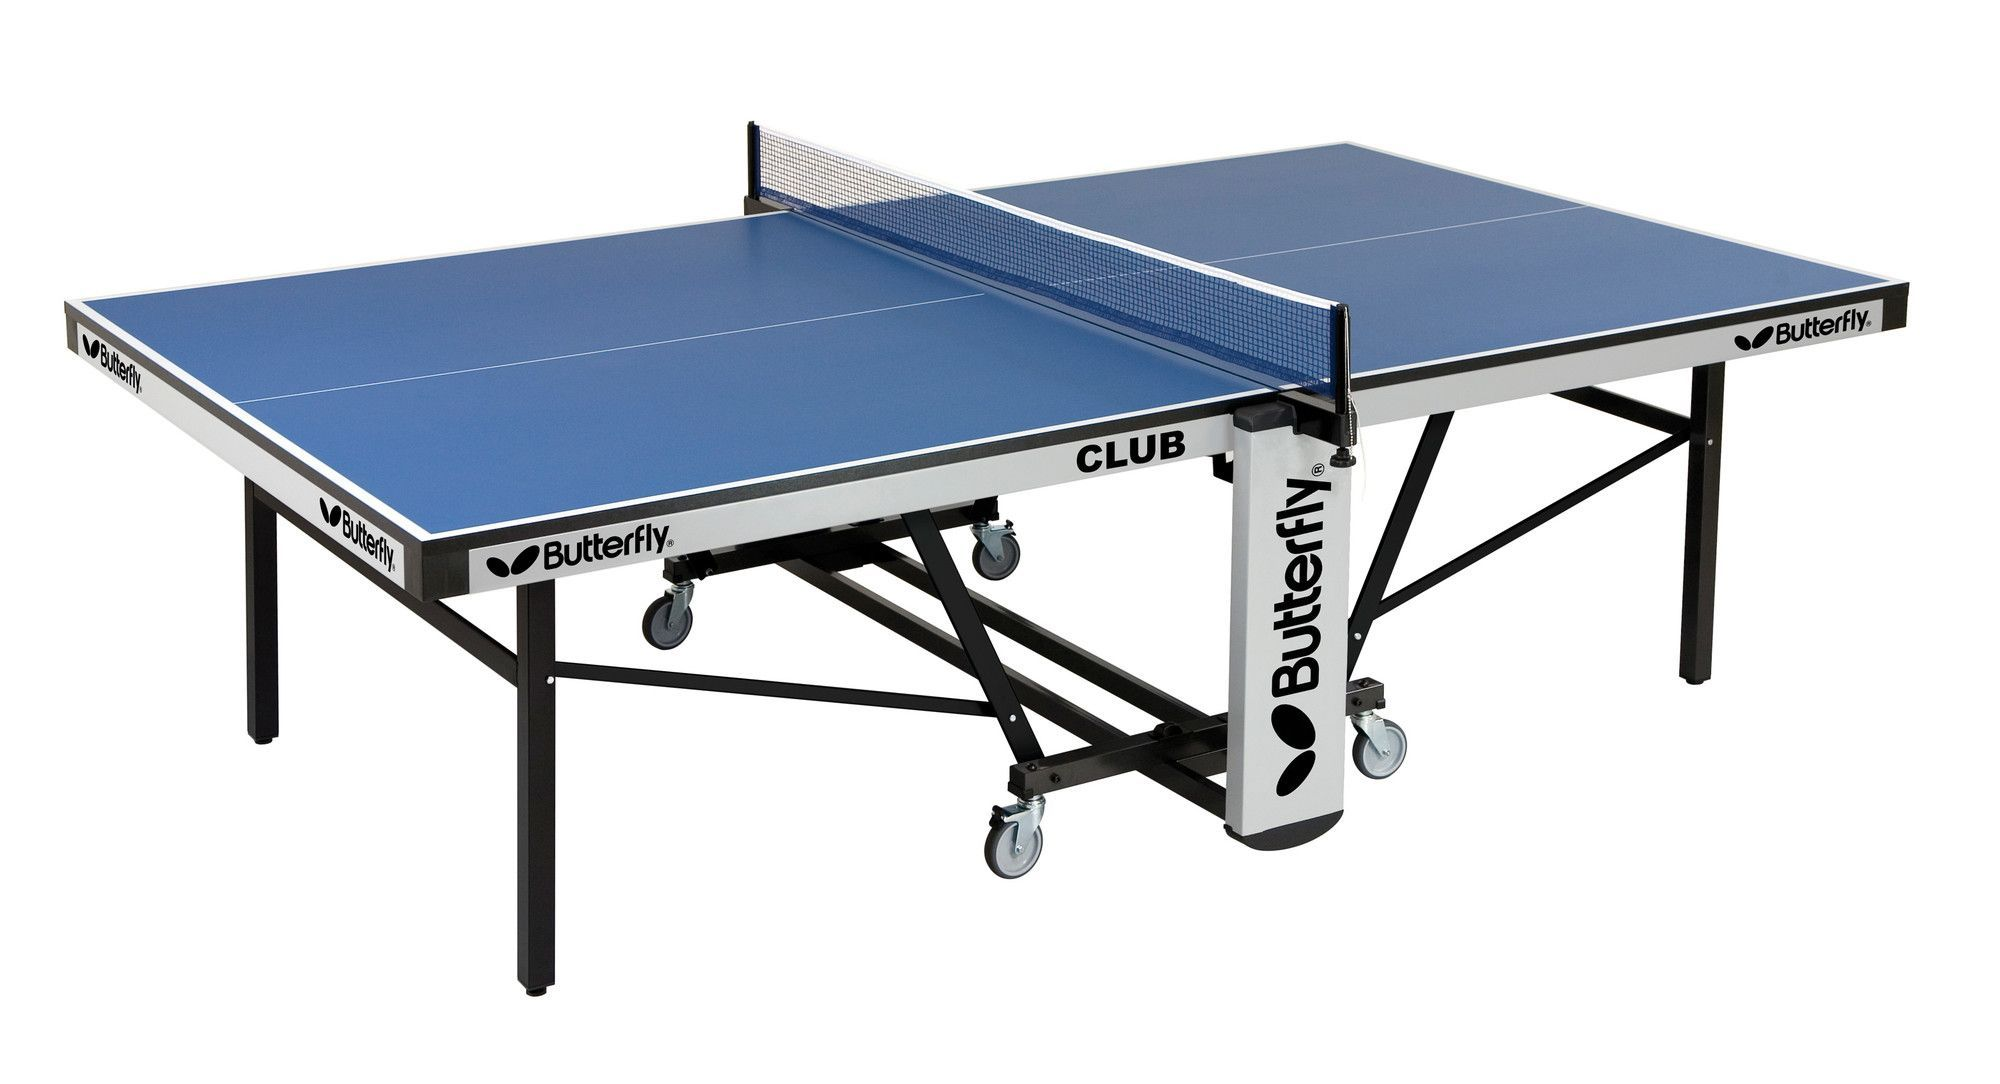 Butterfly Club 25 Regulation Size Foldable Indoor Table